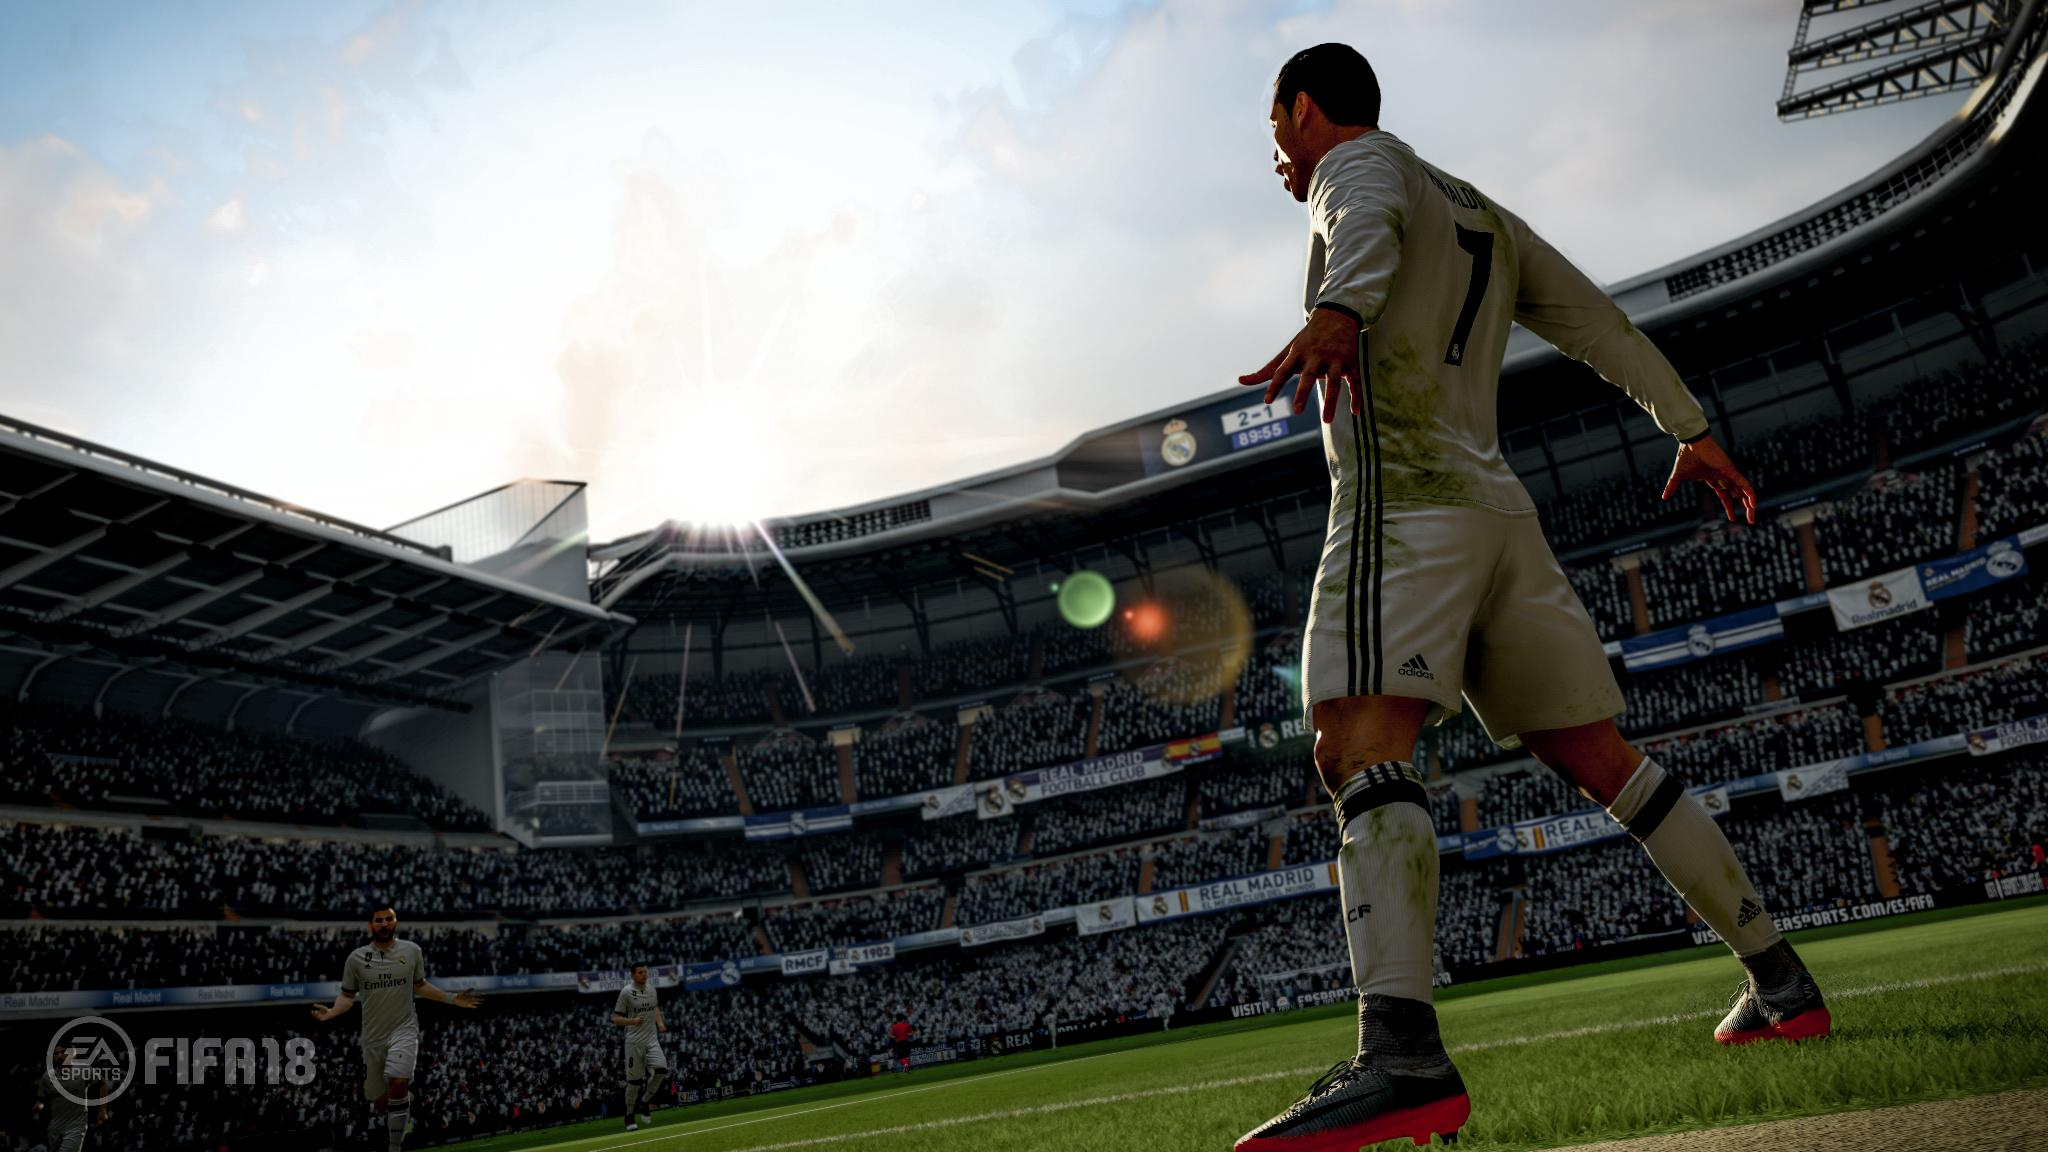 FIFA 18 New Gameplay Features - EA SPORTS Official Site